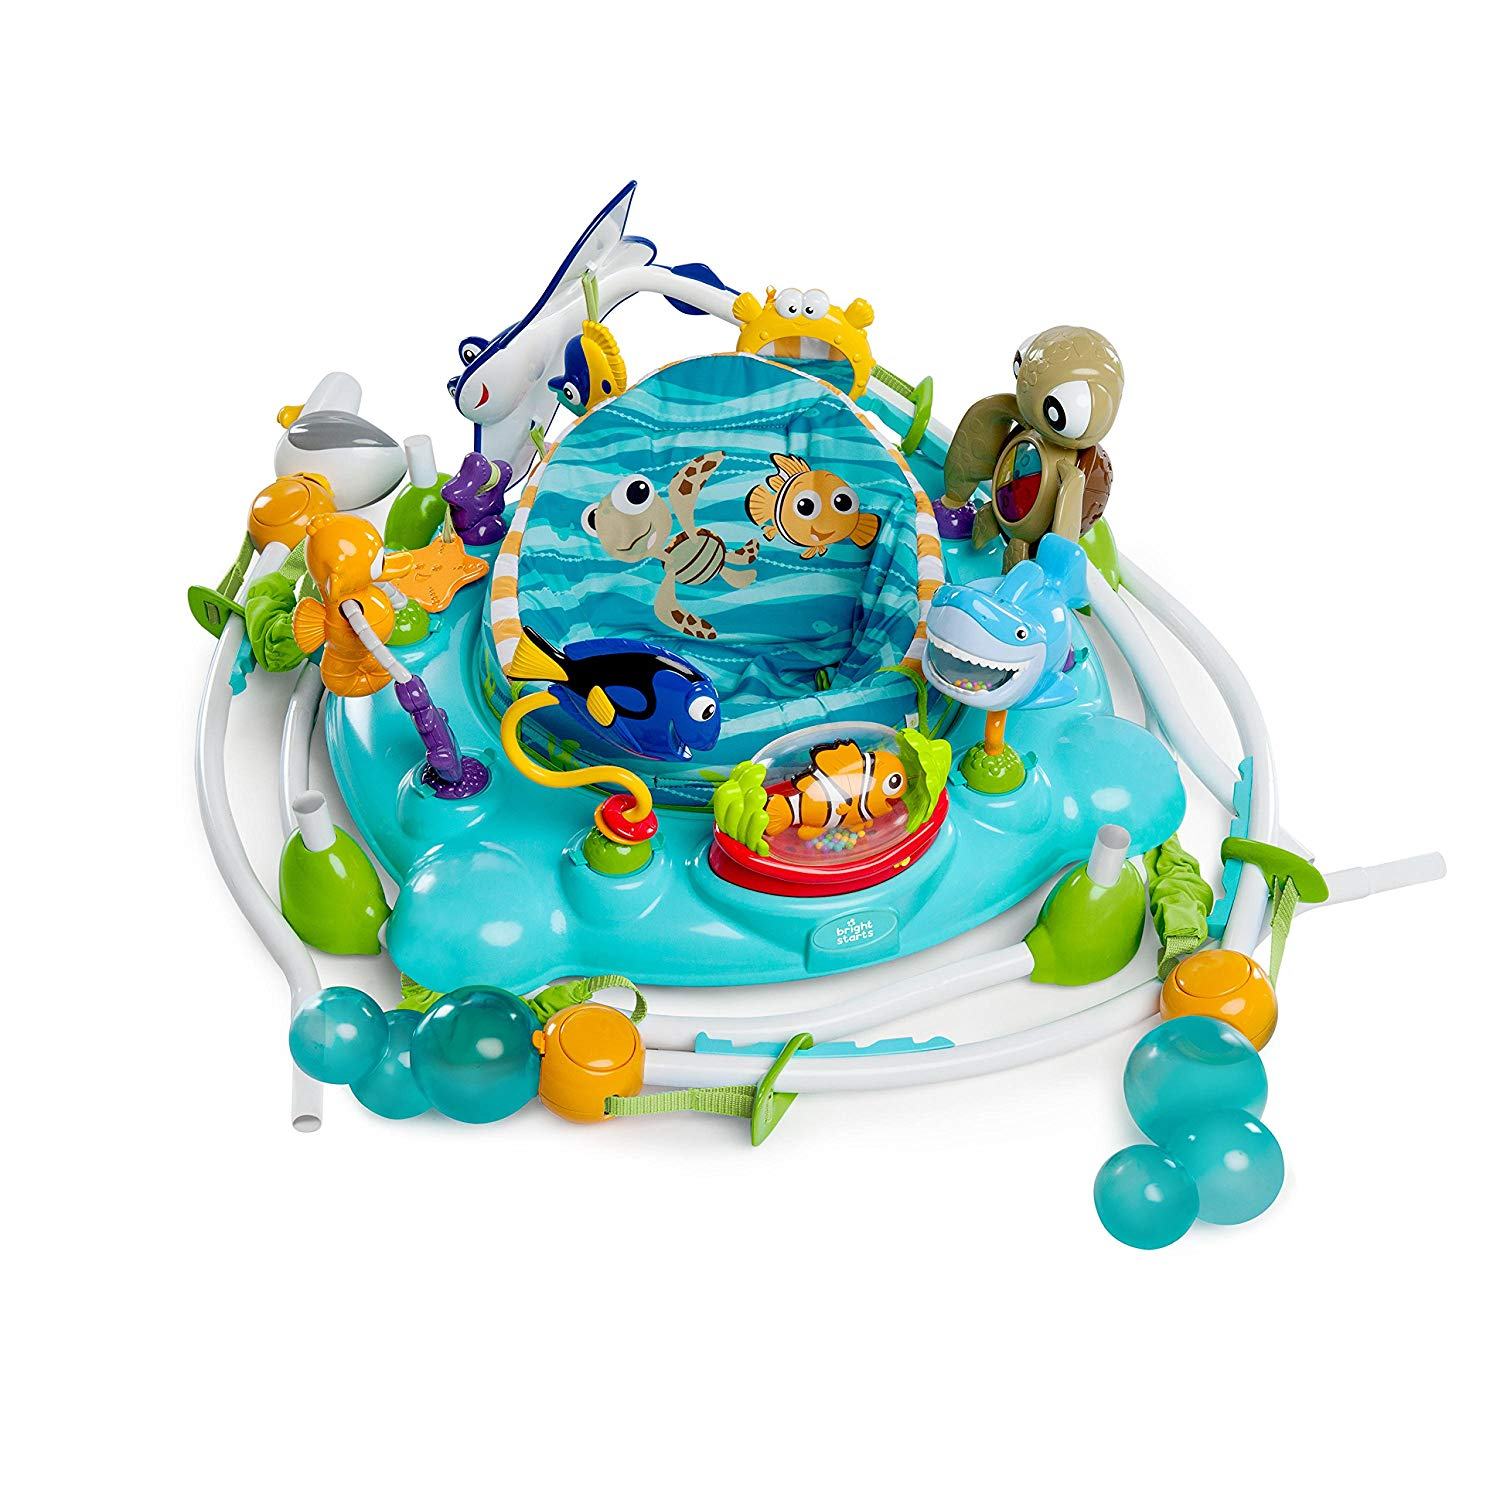 ee9baa49afdf Disney Finding Nemo Sea of Activities Jumper Jumperoo - Best ...